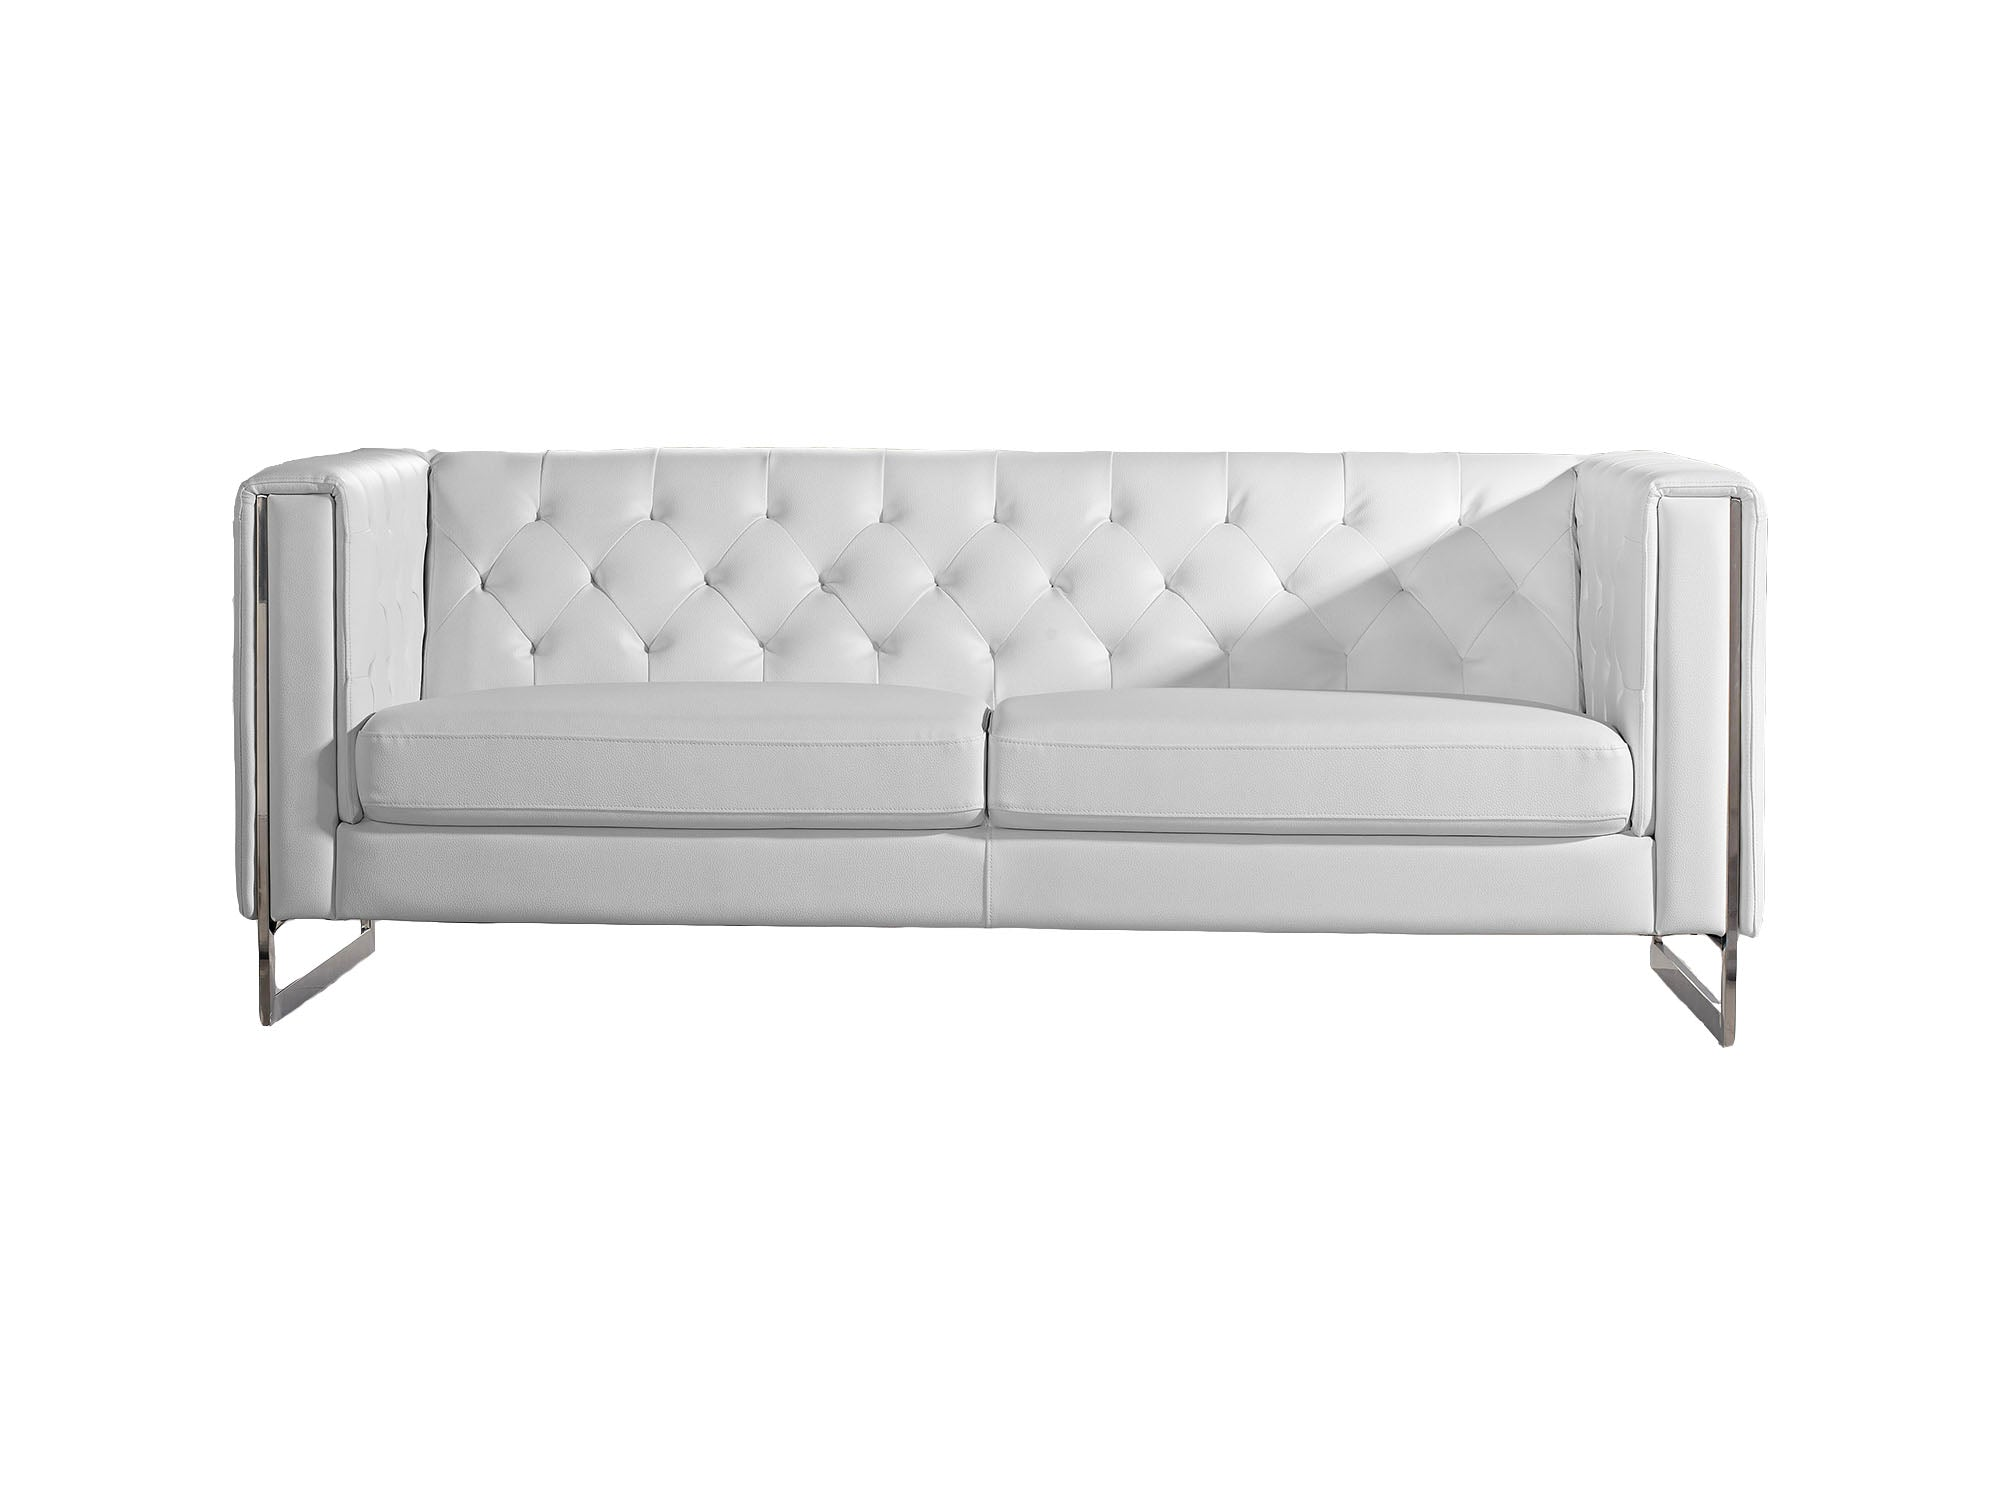 METRO CHROME SOFA - WHITE